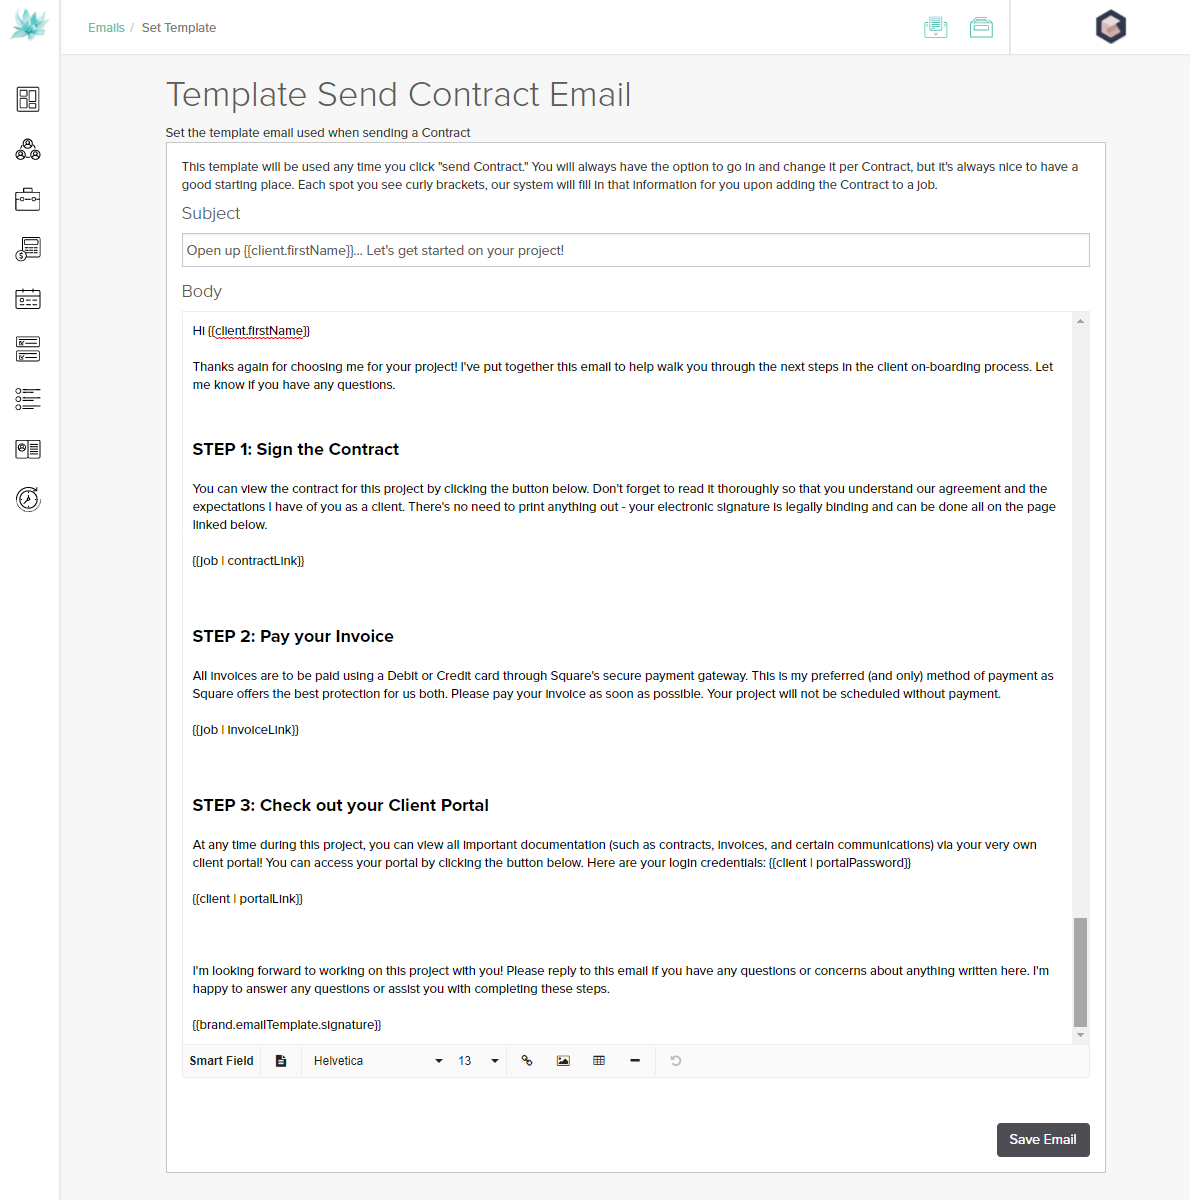 Dubsado Email Template for Client Onboarding